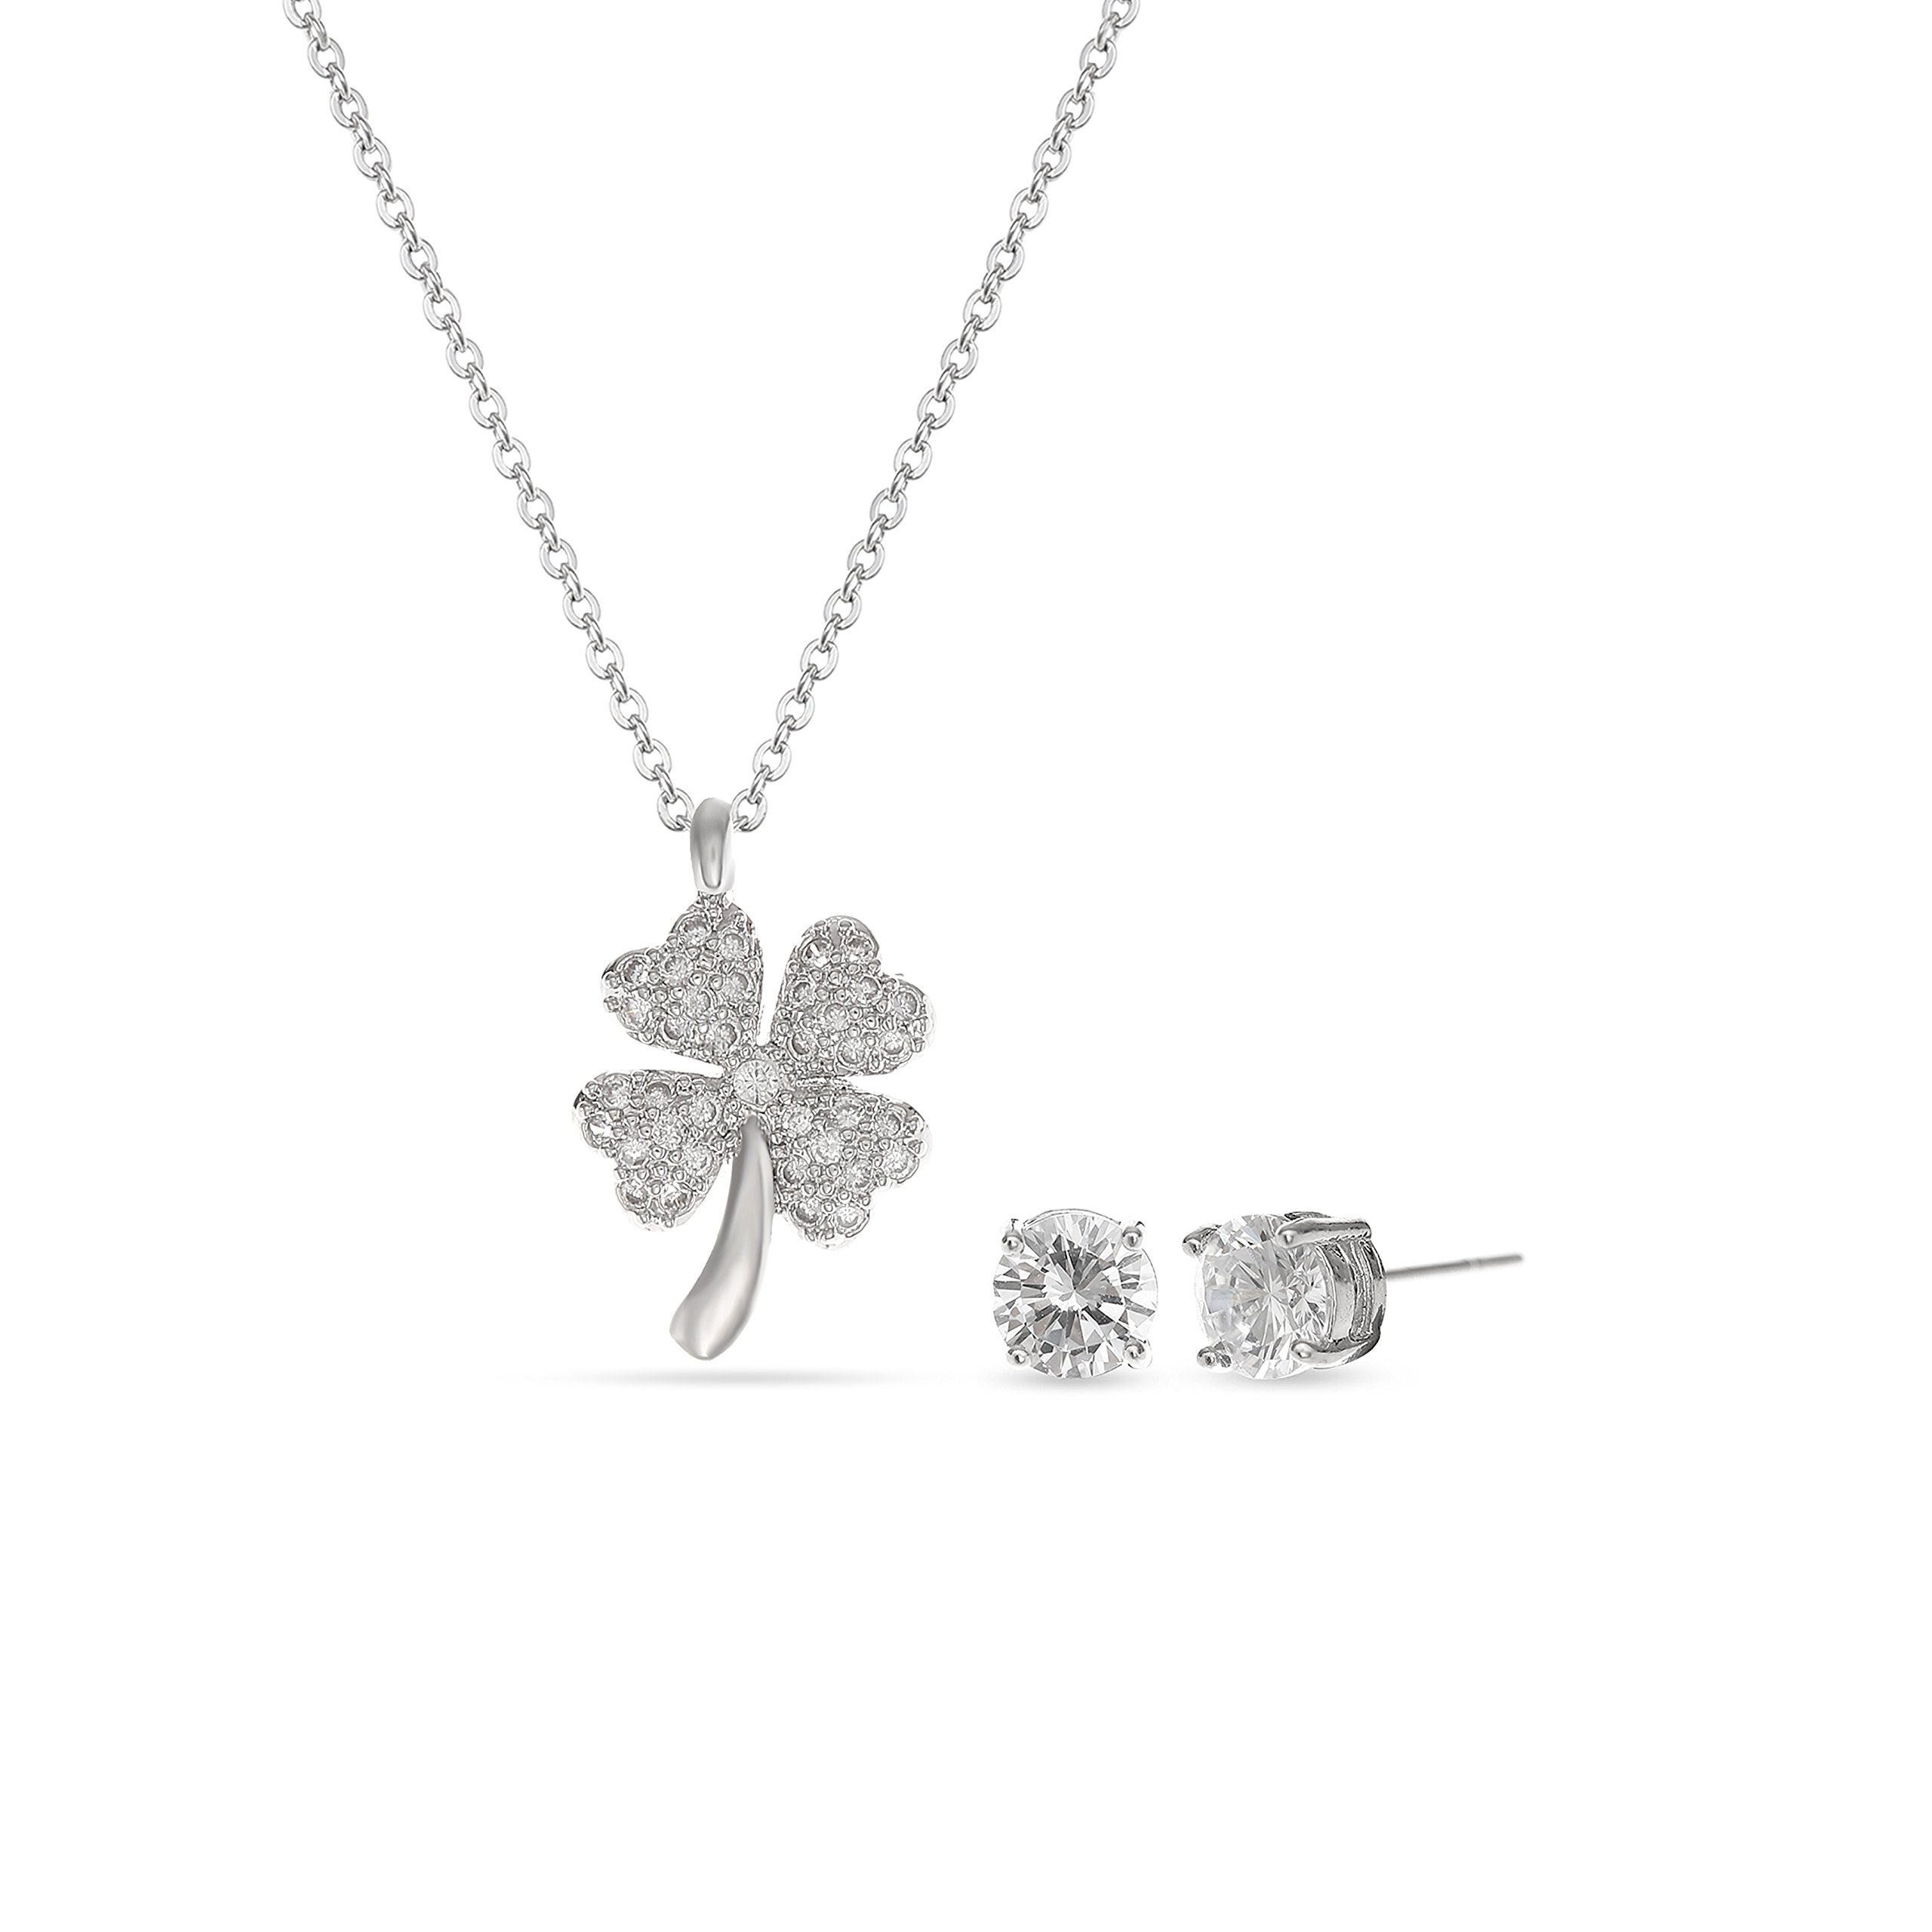 MYKEA Lucky Clover Jewelry Set - 14K White Gold Plated Four-Leaf Clover Clear Cubic Zirconia Crystal Rhinestone Stud Necklace Set for Women Girls Party Prom Vacation Holiday Everyday